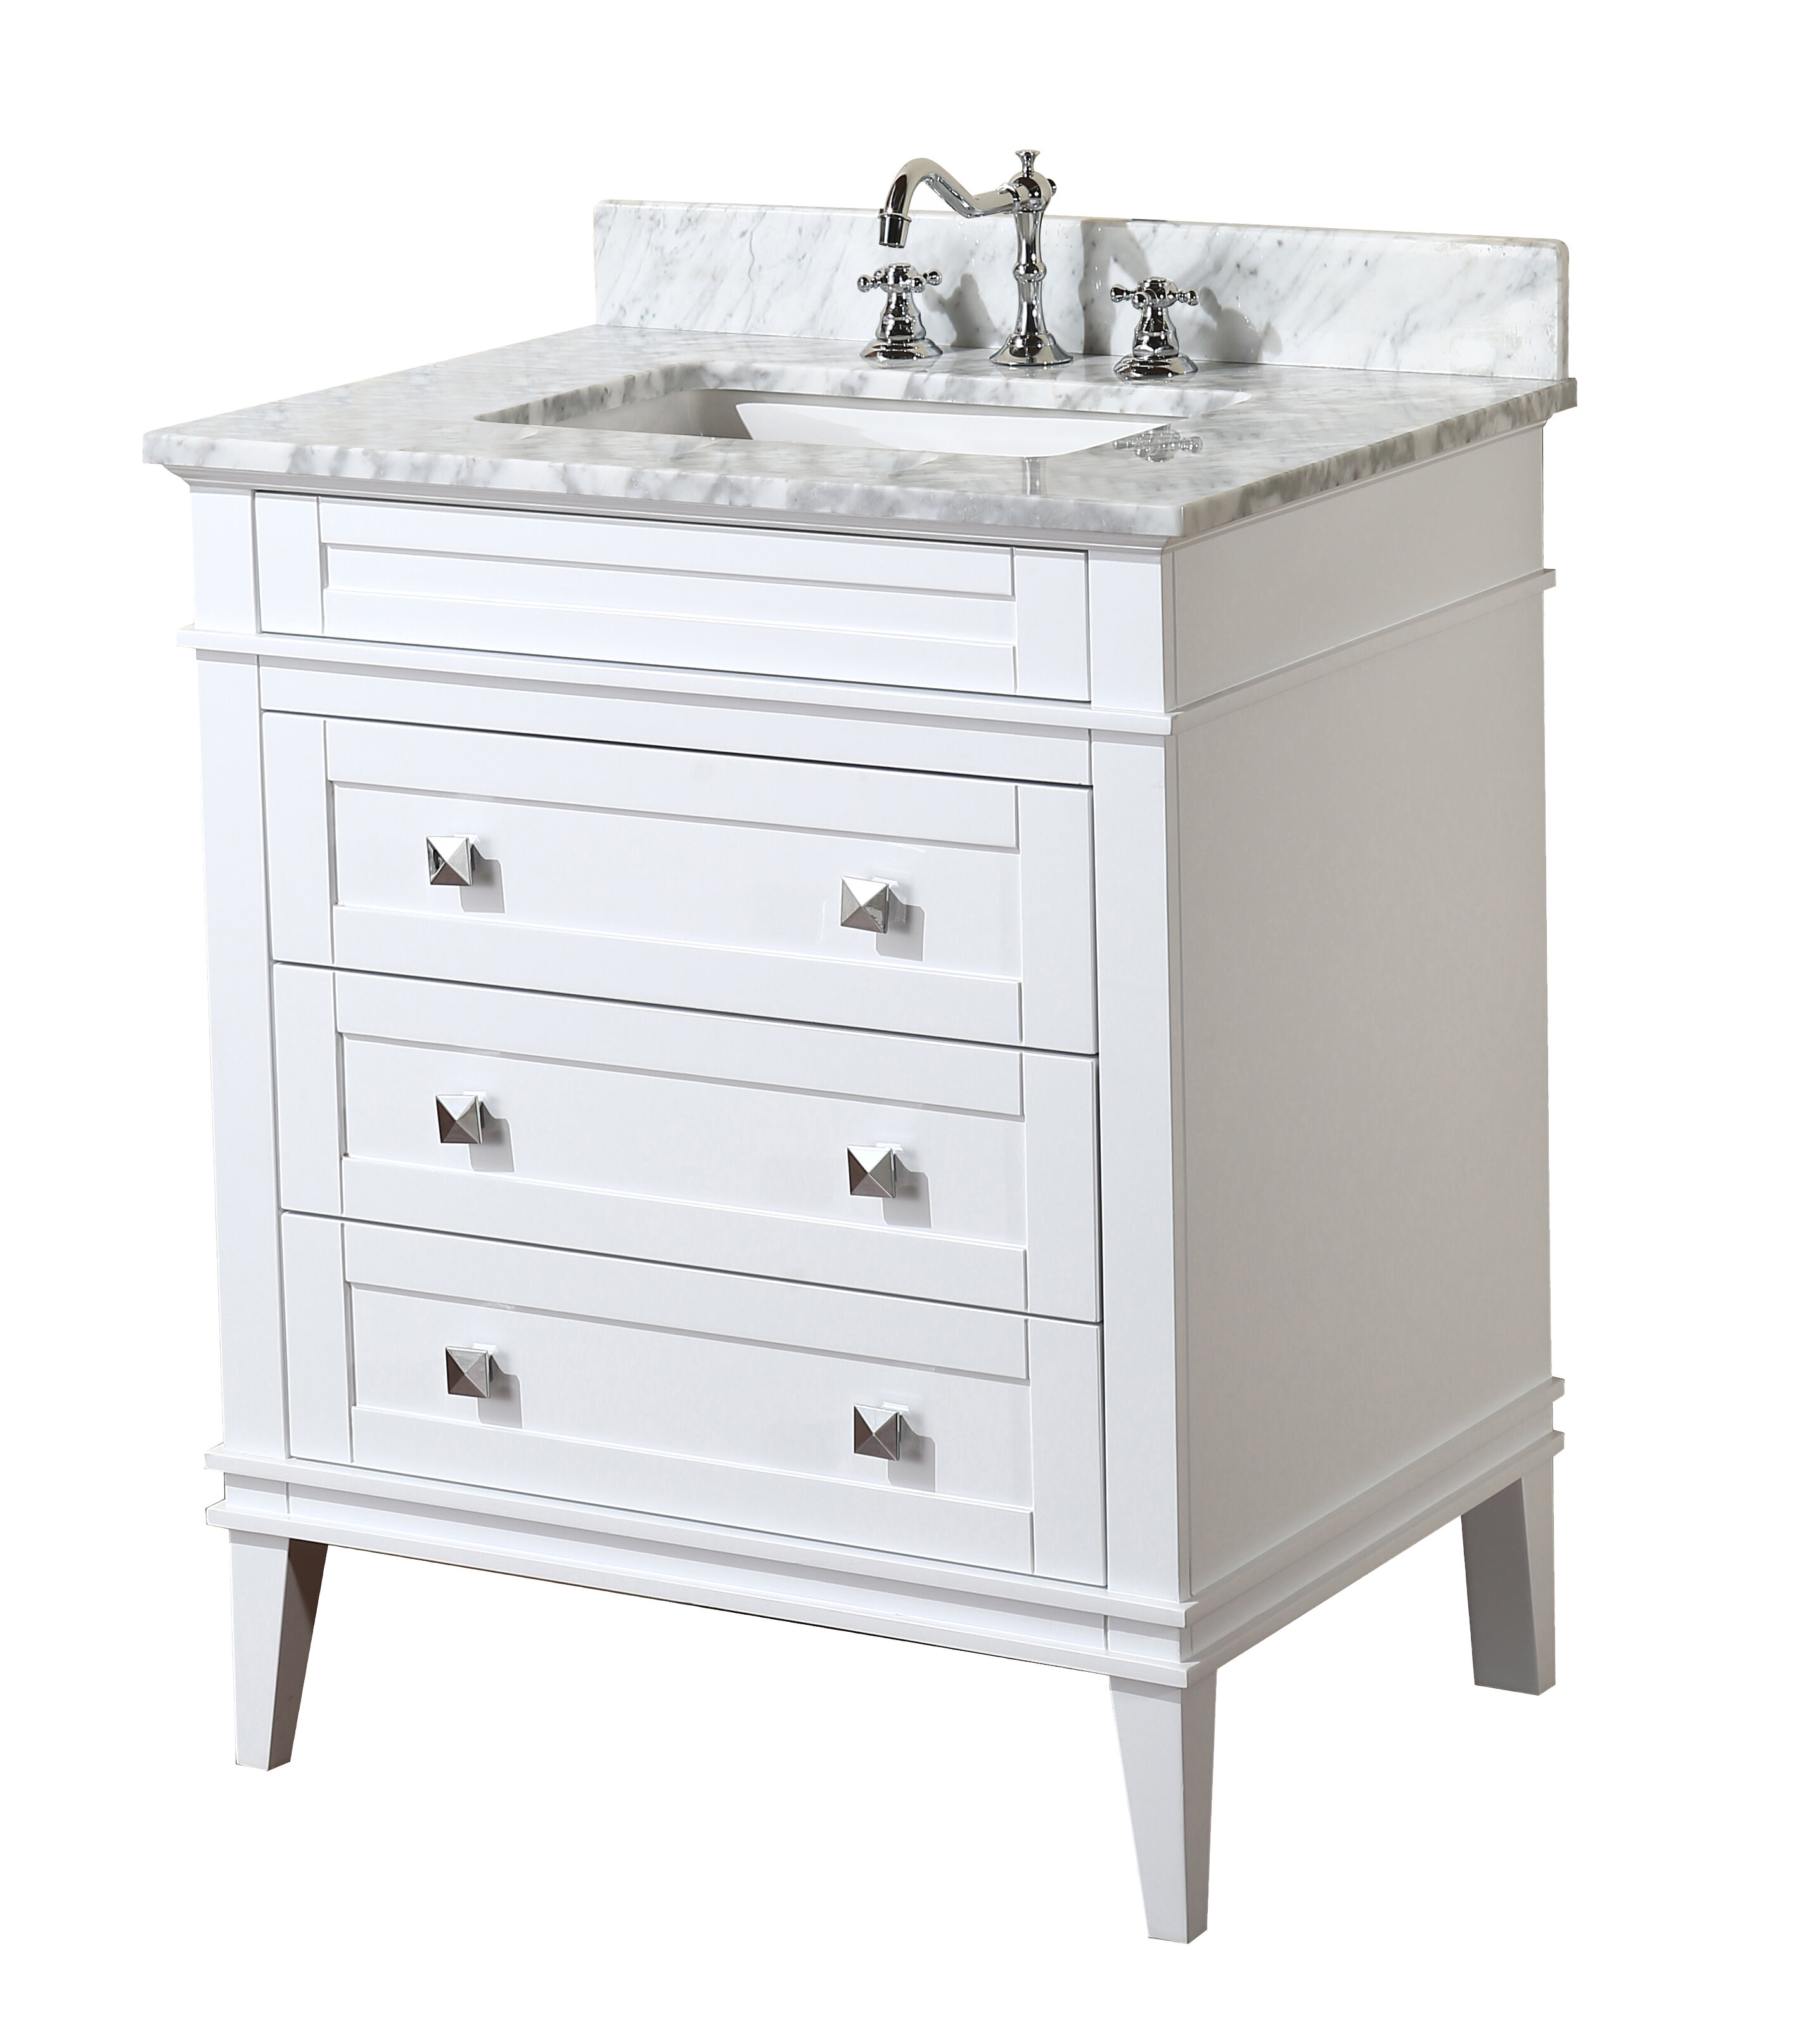 facf cabinet web ikea replacement bathroom drawers drawer doors img vanity products godmorgon